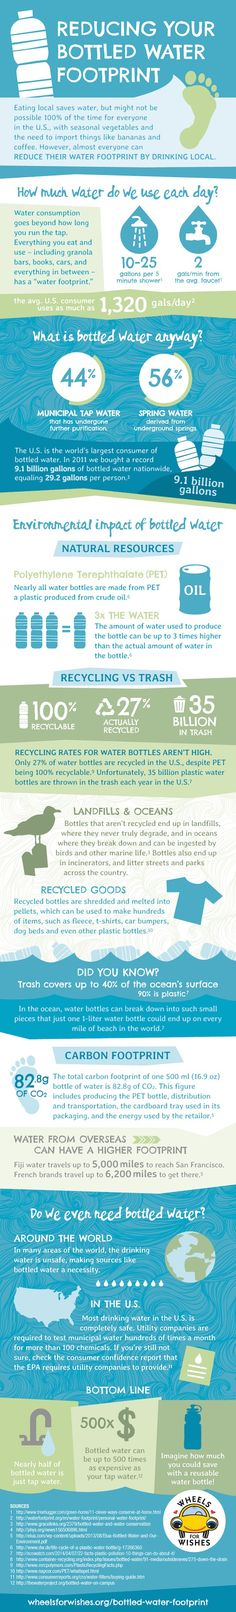 Everyone can reduce their water bottle footprint by drinking local. Check out these awesome tips on how to reduce your bottled water footprint. Water Footprint, Carbon Footprint, Drinking Water, Bottled Water, Water Bottles, Plastic Bottles, Recycling Facts, Water Facts, Green School